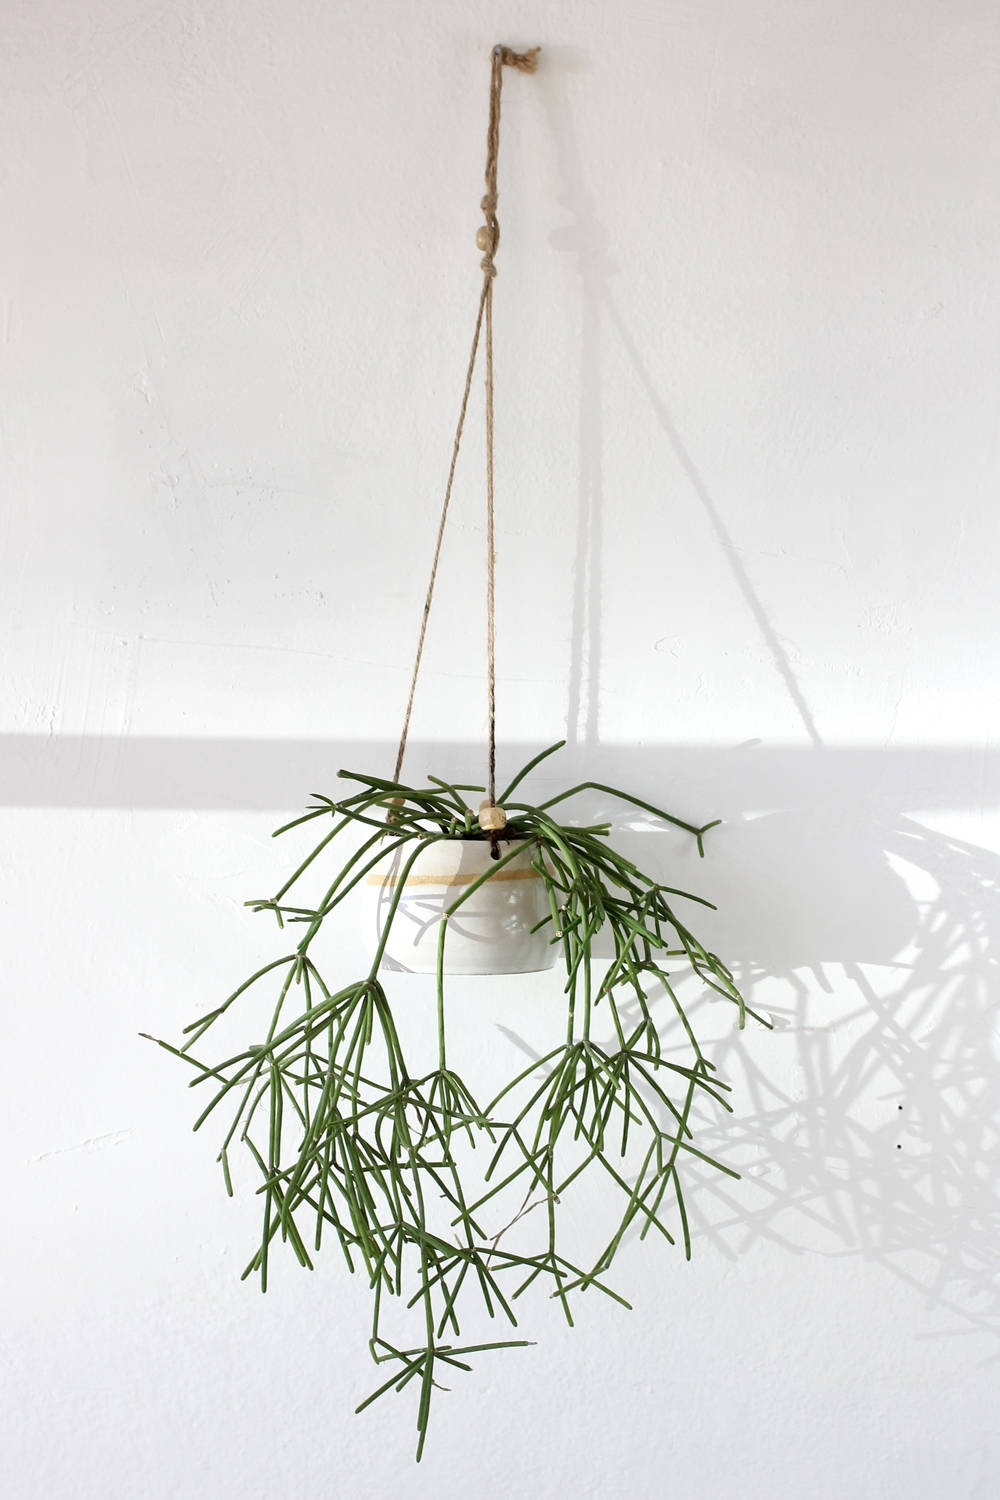 Ceramic Hanging Planter, via Wild Poppy Goods